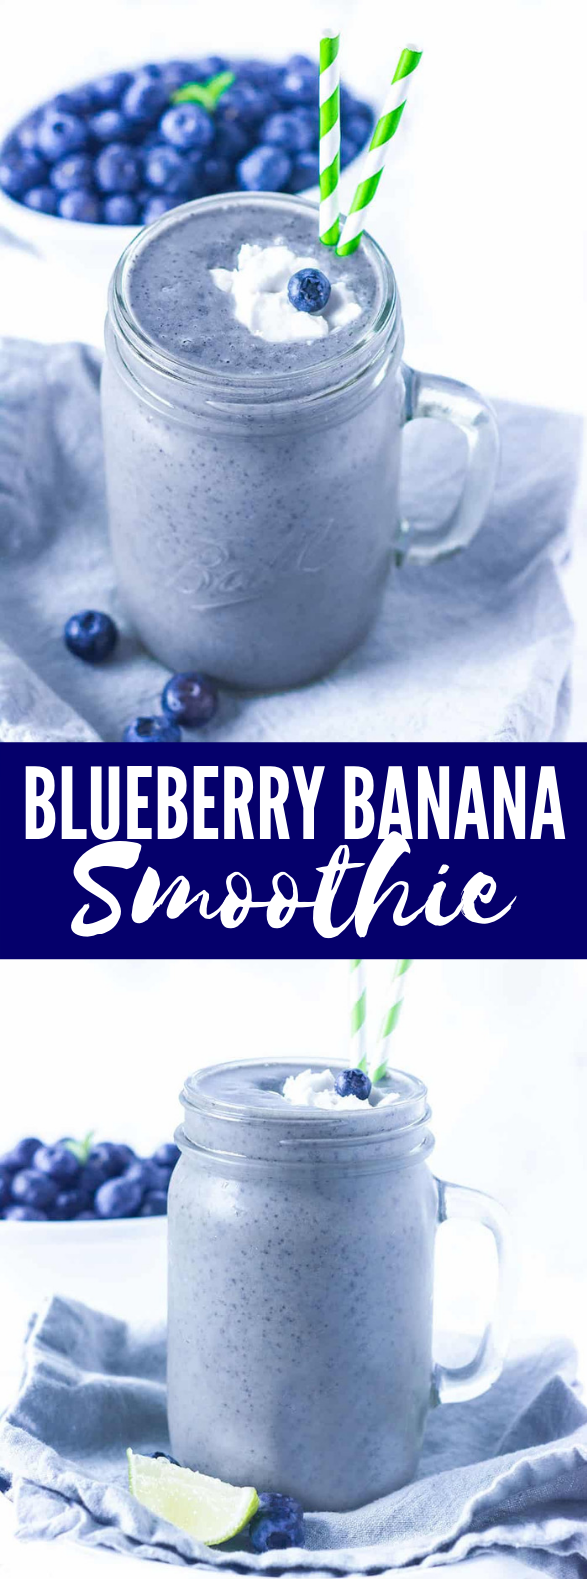 Blueberry Banana Smoothie #drinks #breakfast